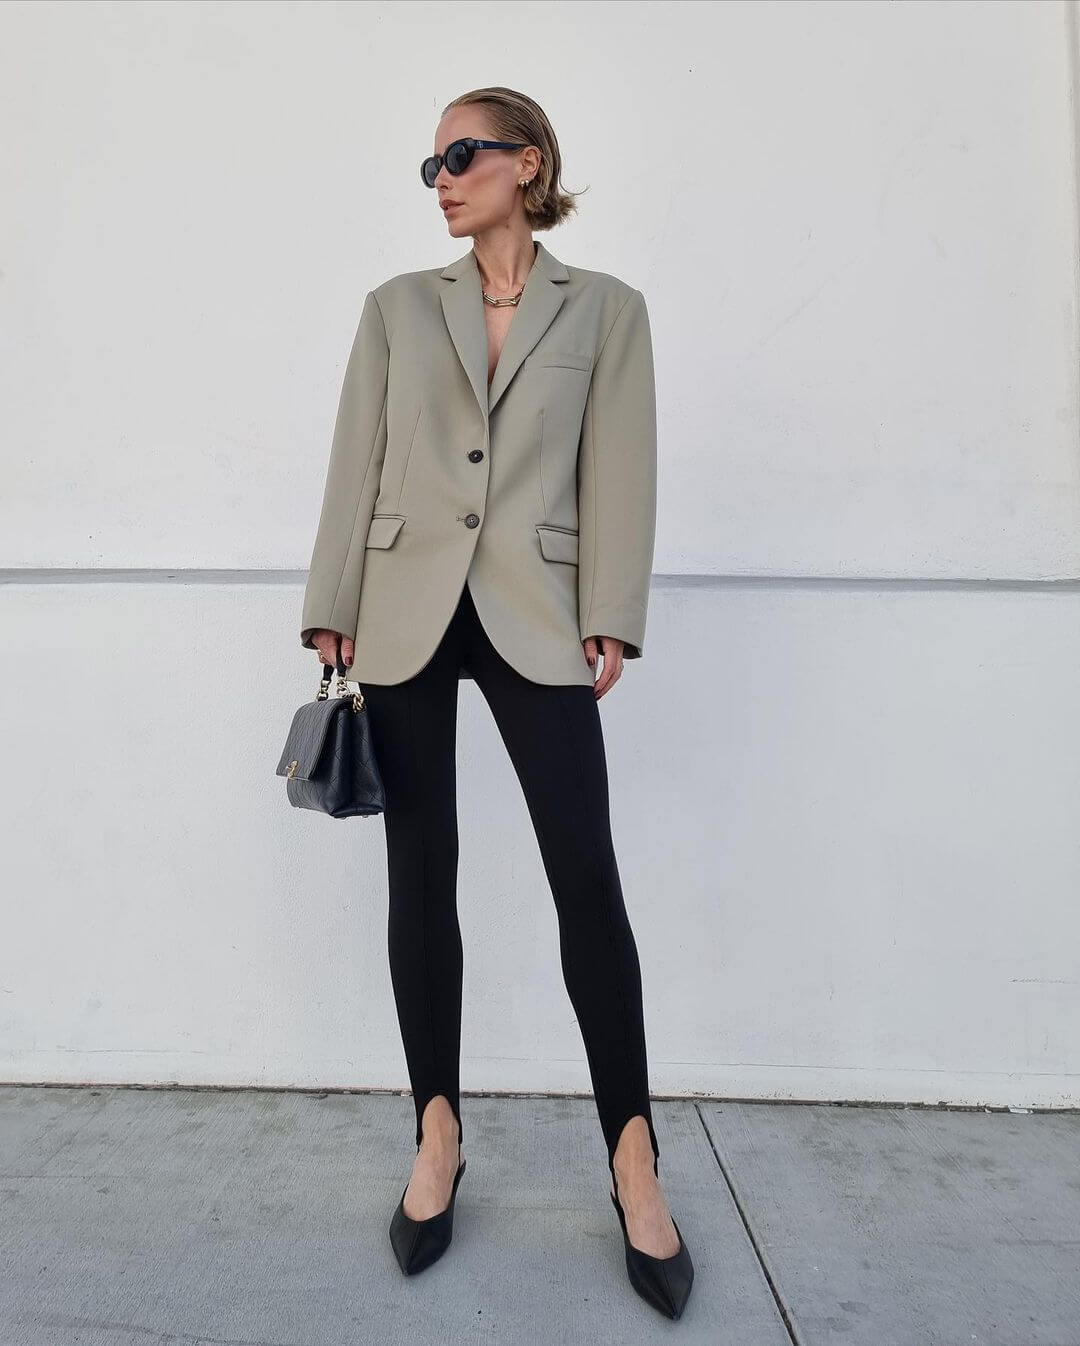 This Outfit Makes A Strong Case For Stirrup Leggings